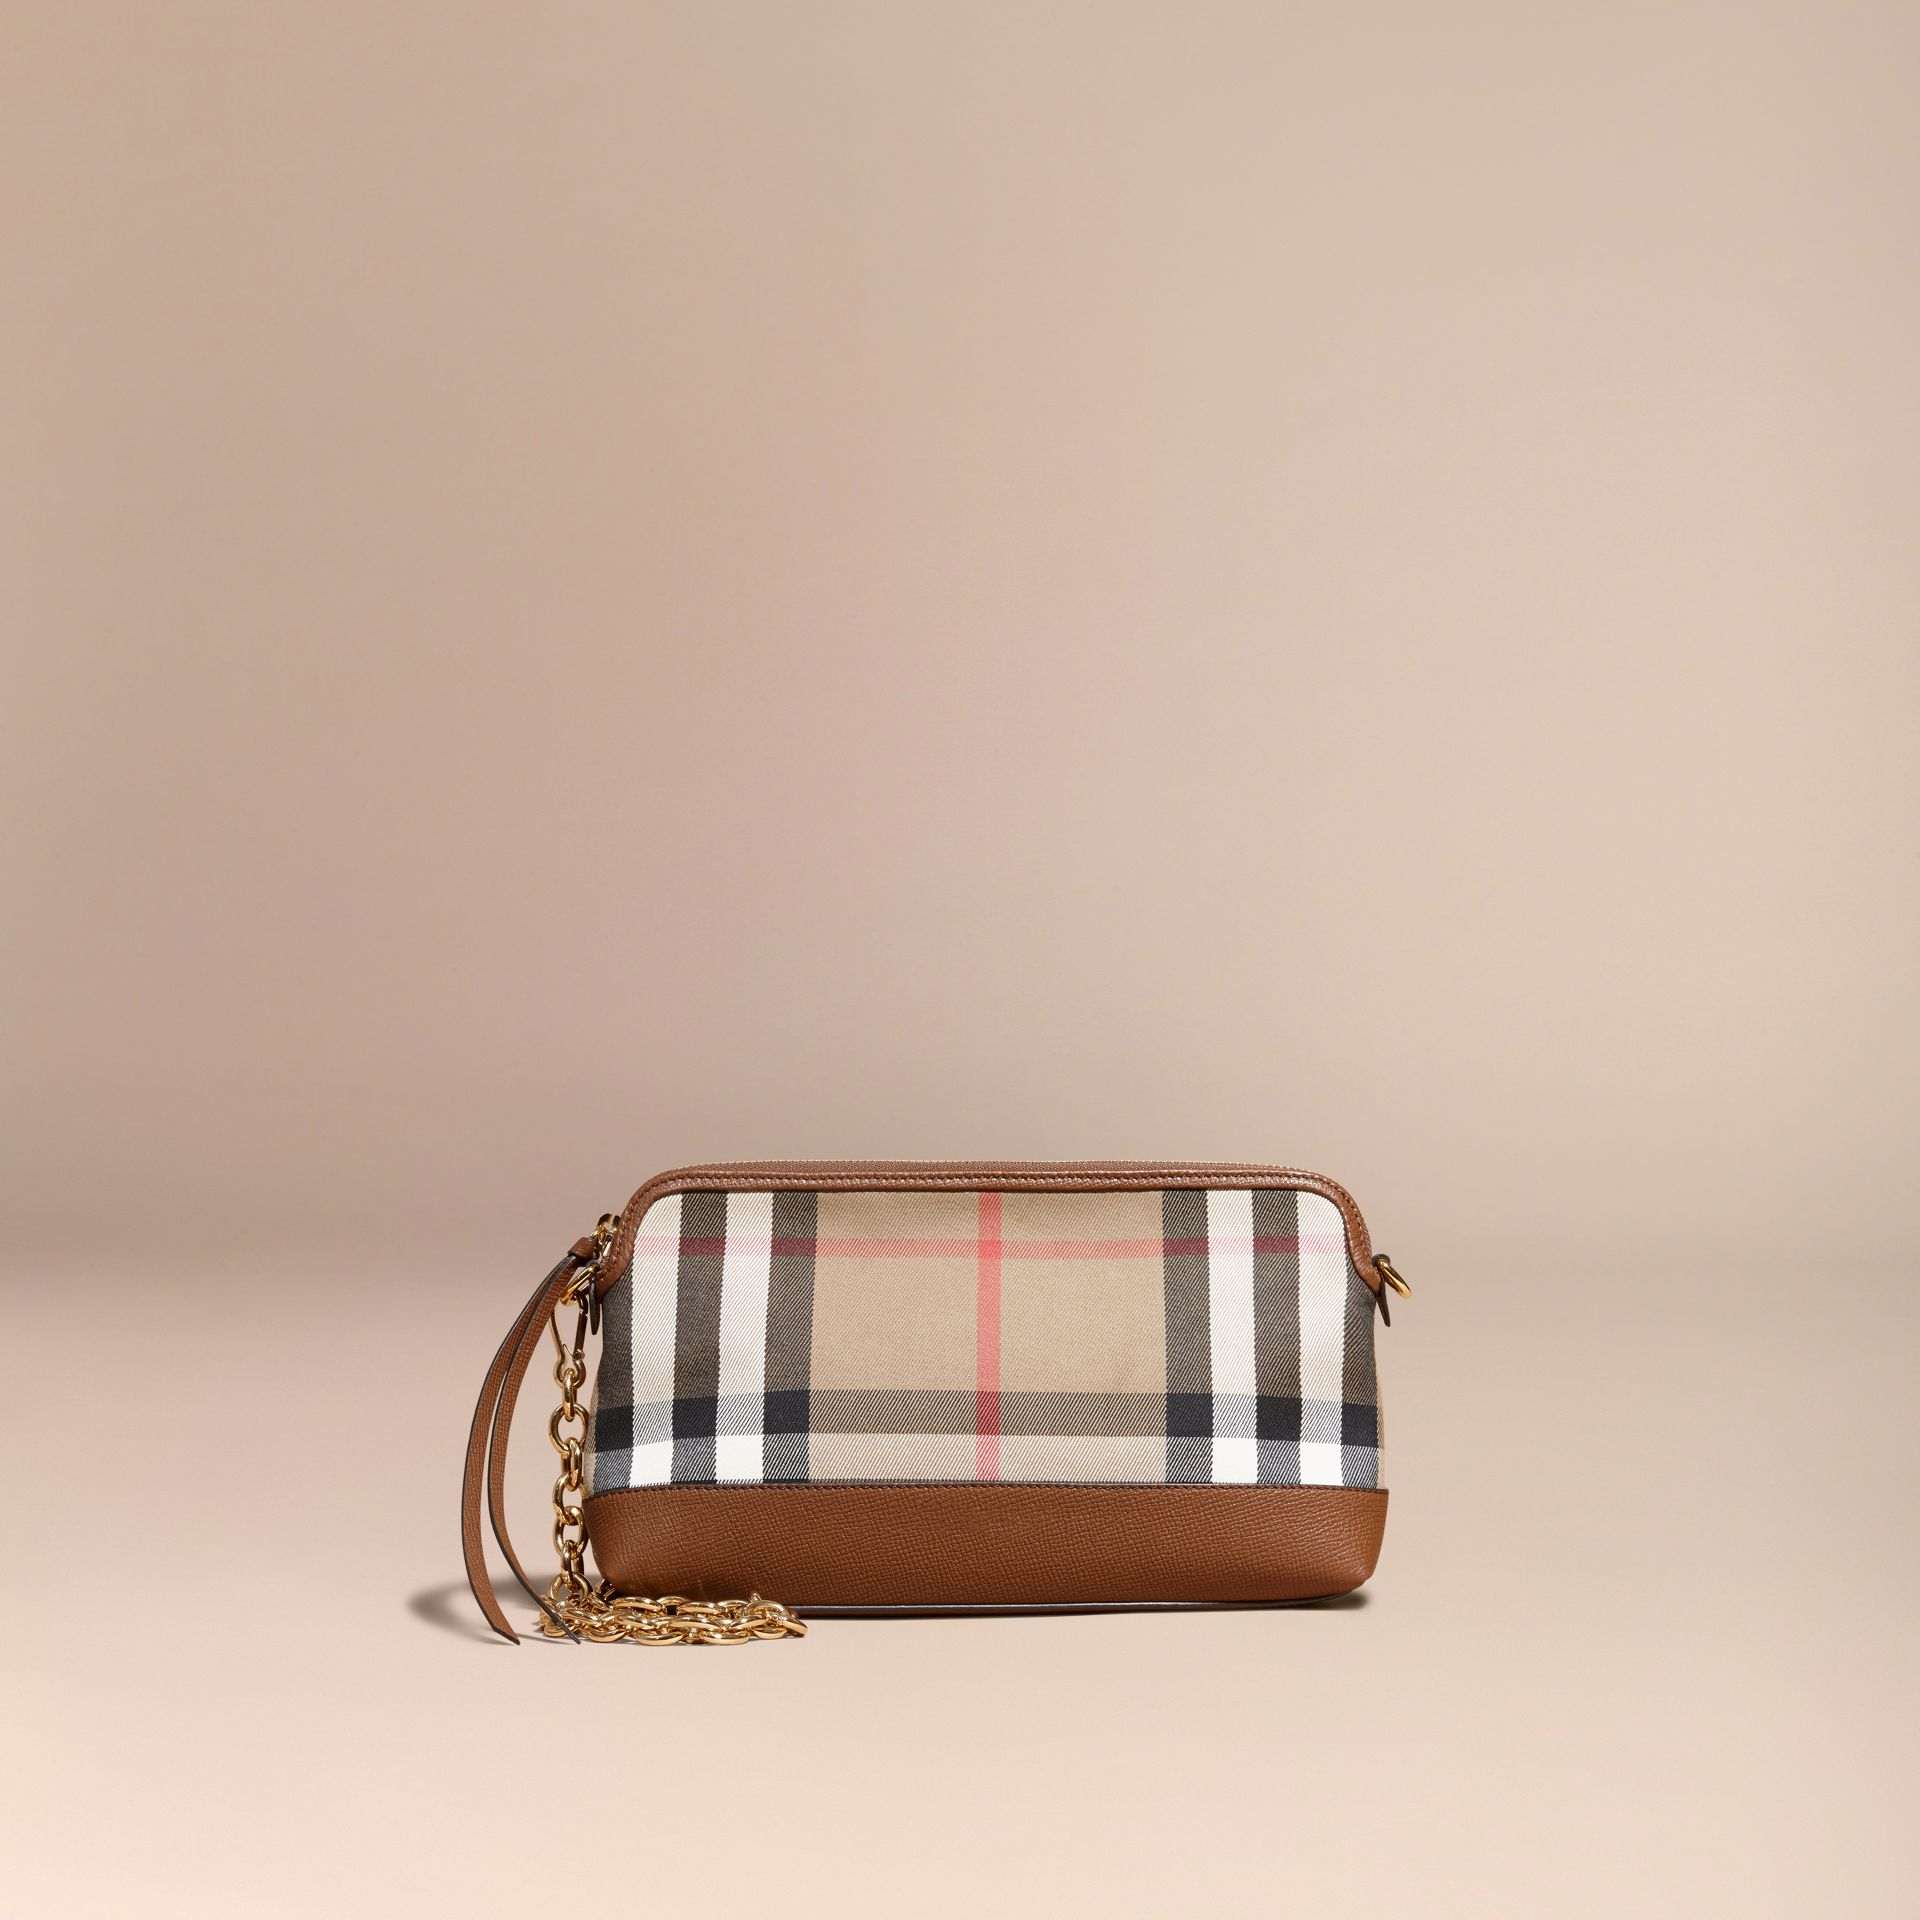 House Check and Leather Clutch Bag in Tan - gallery image 8